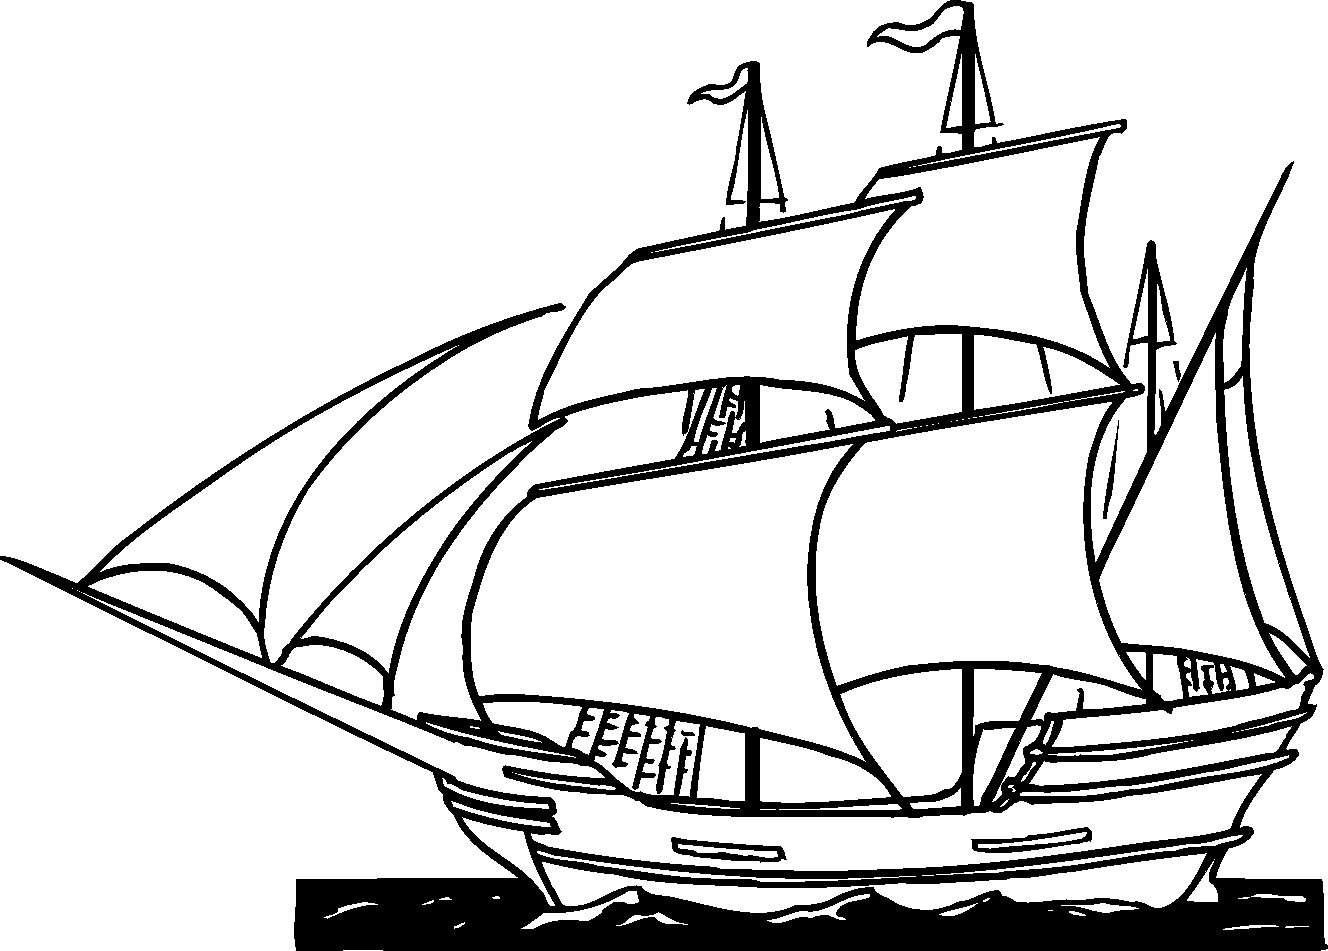 british sailing warship coloring pages - photo#37